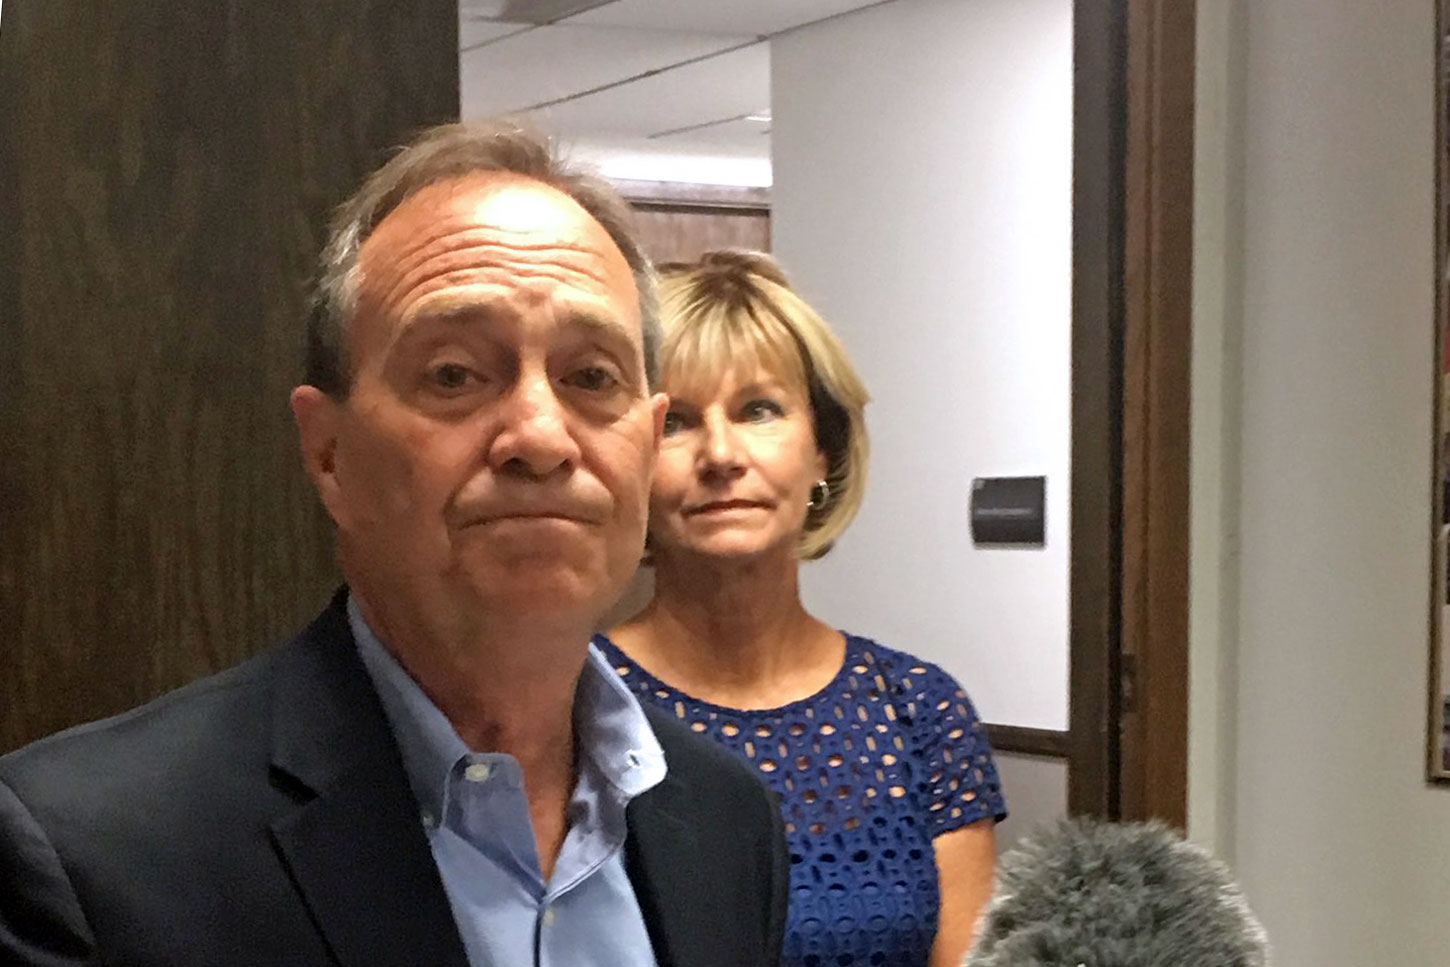 <p>Stepping out of the race, an emotional Rep. Ed Perlmuttersaid the Democratic gubernatorial primary was going to take more energy than he had.</p>